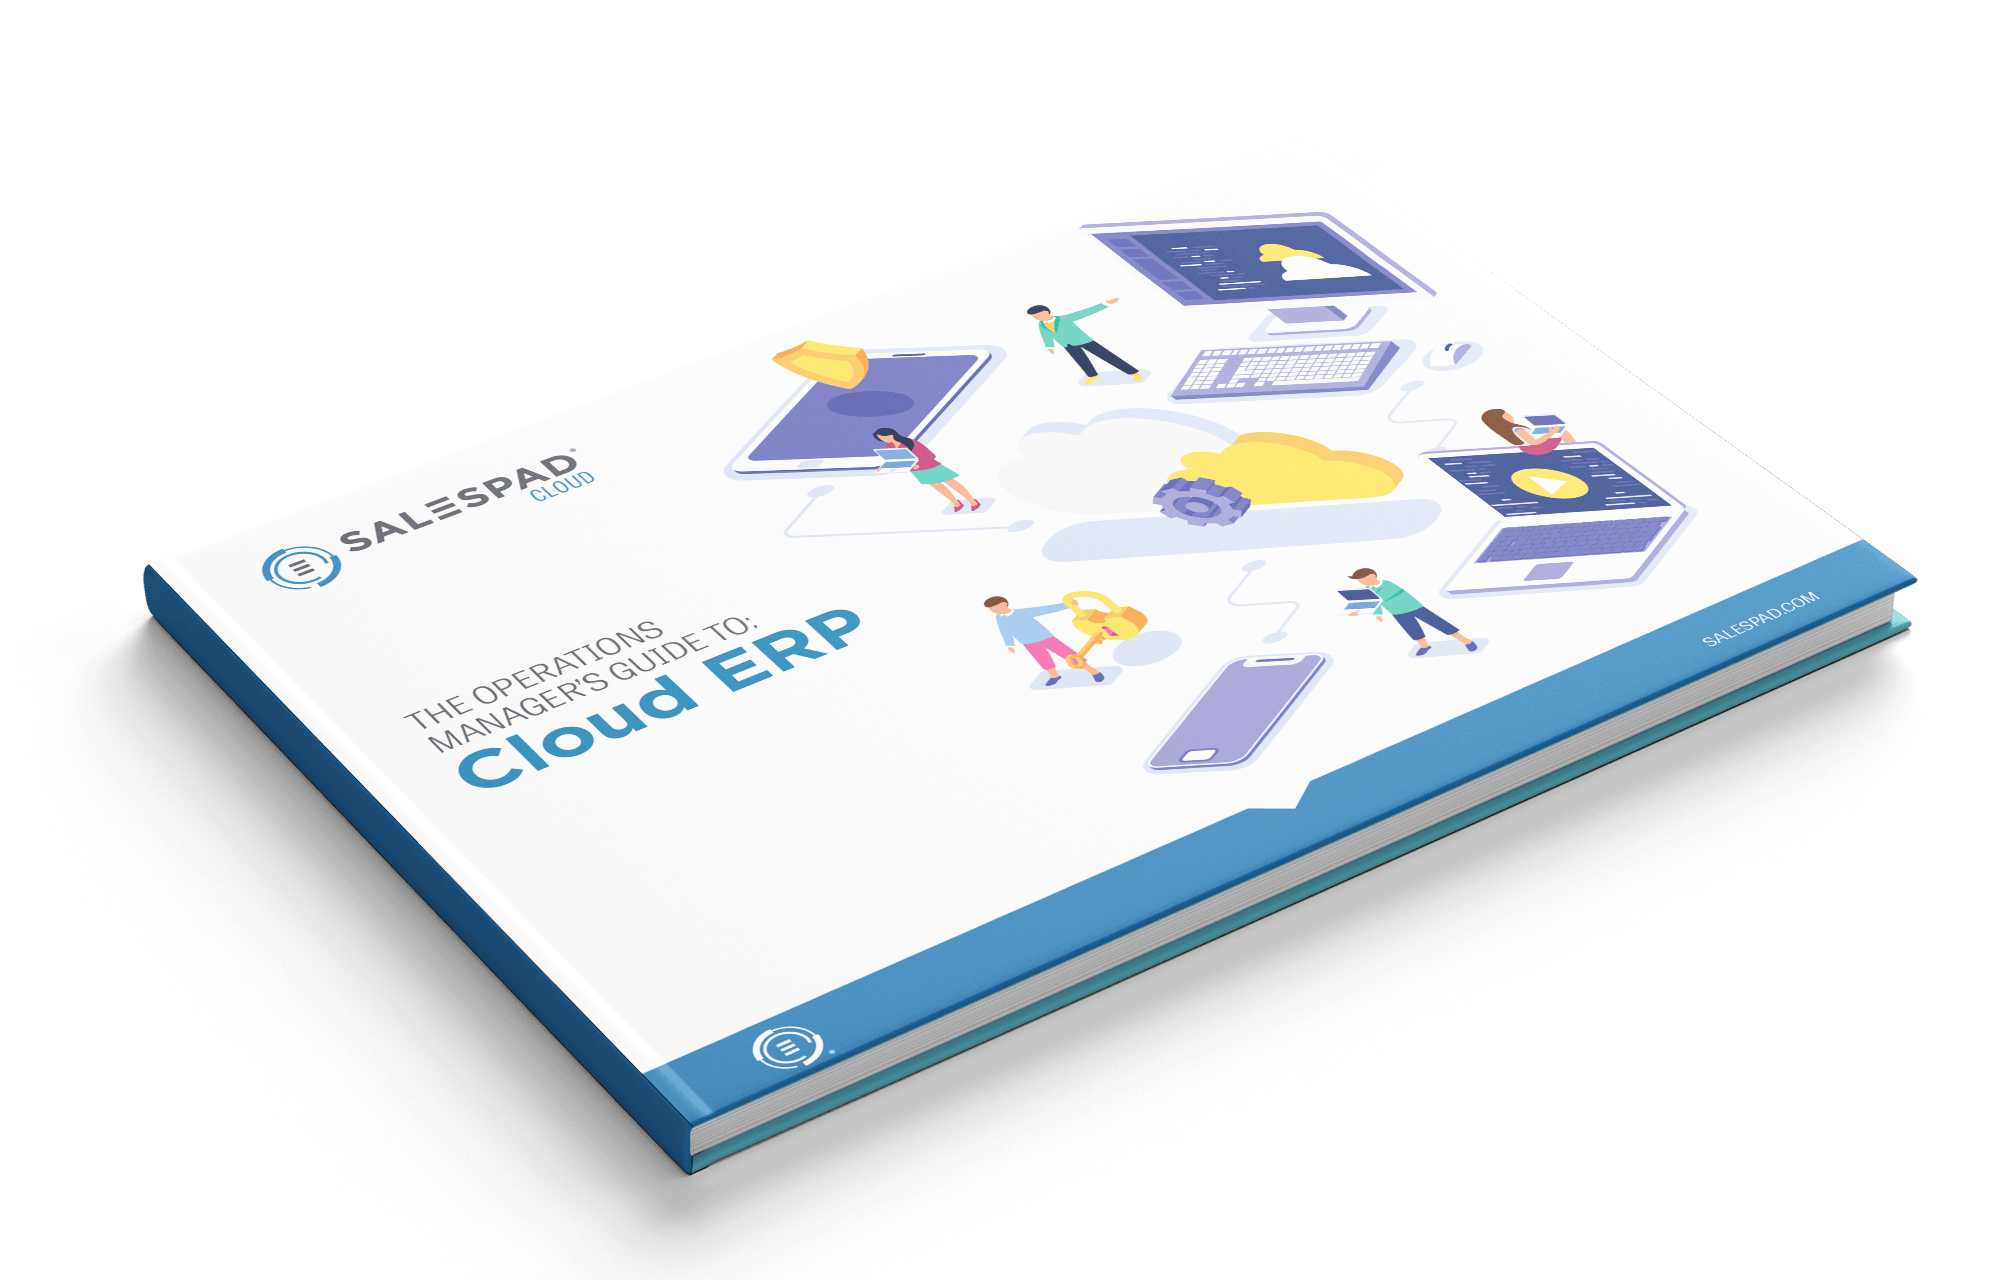 Operational Managers Guide To Cloud ERP cover